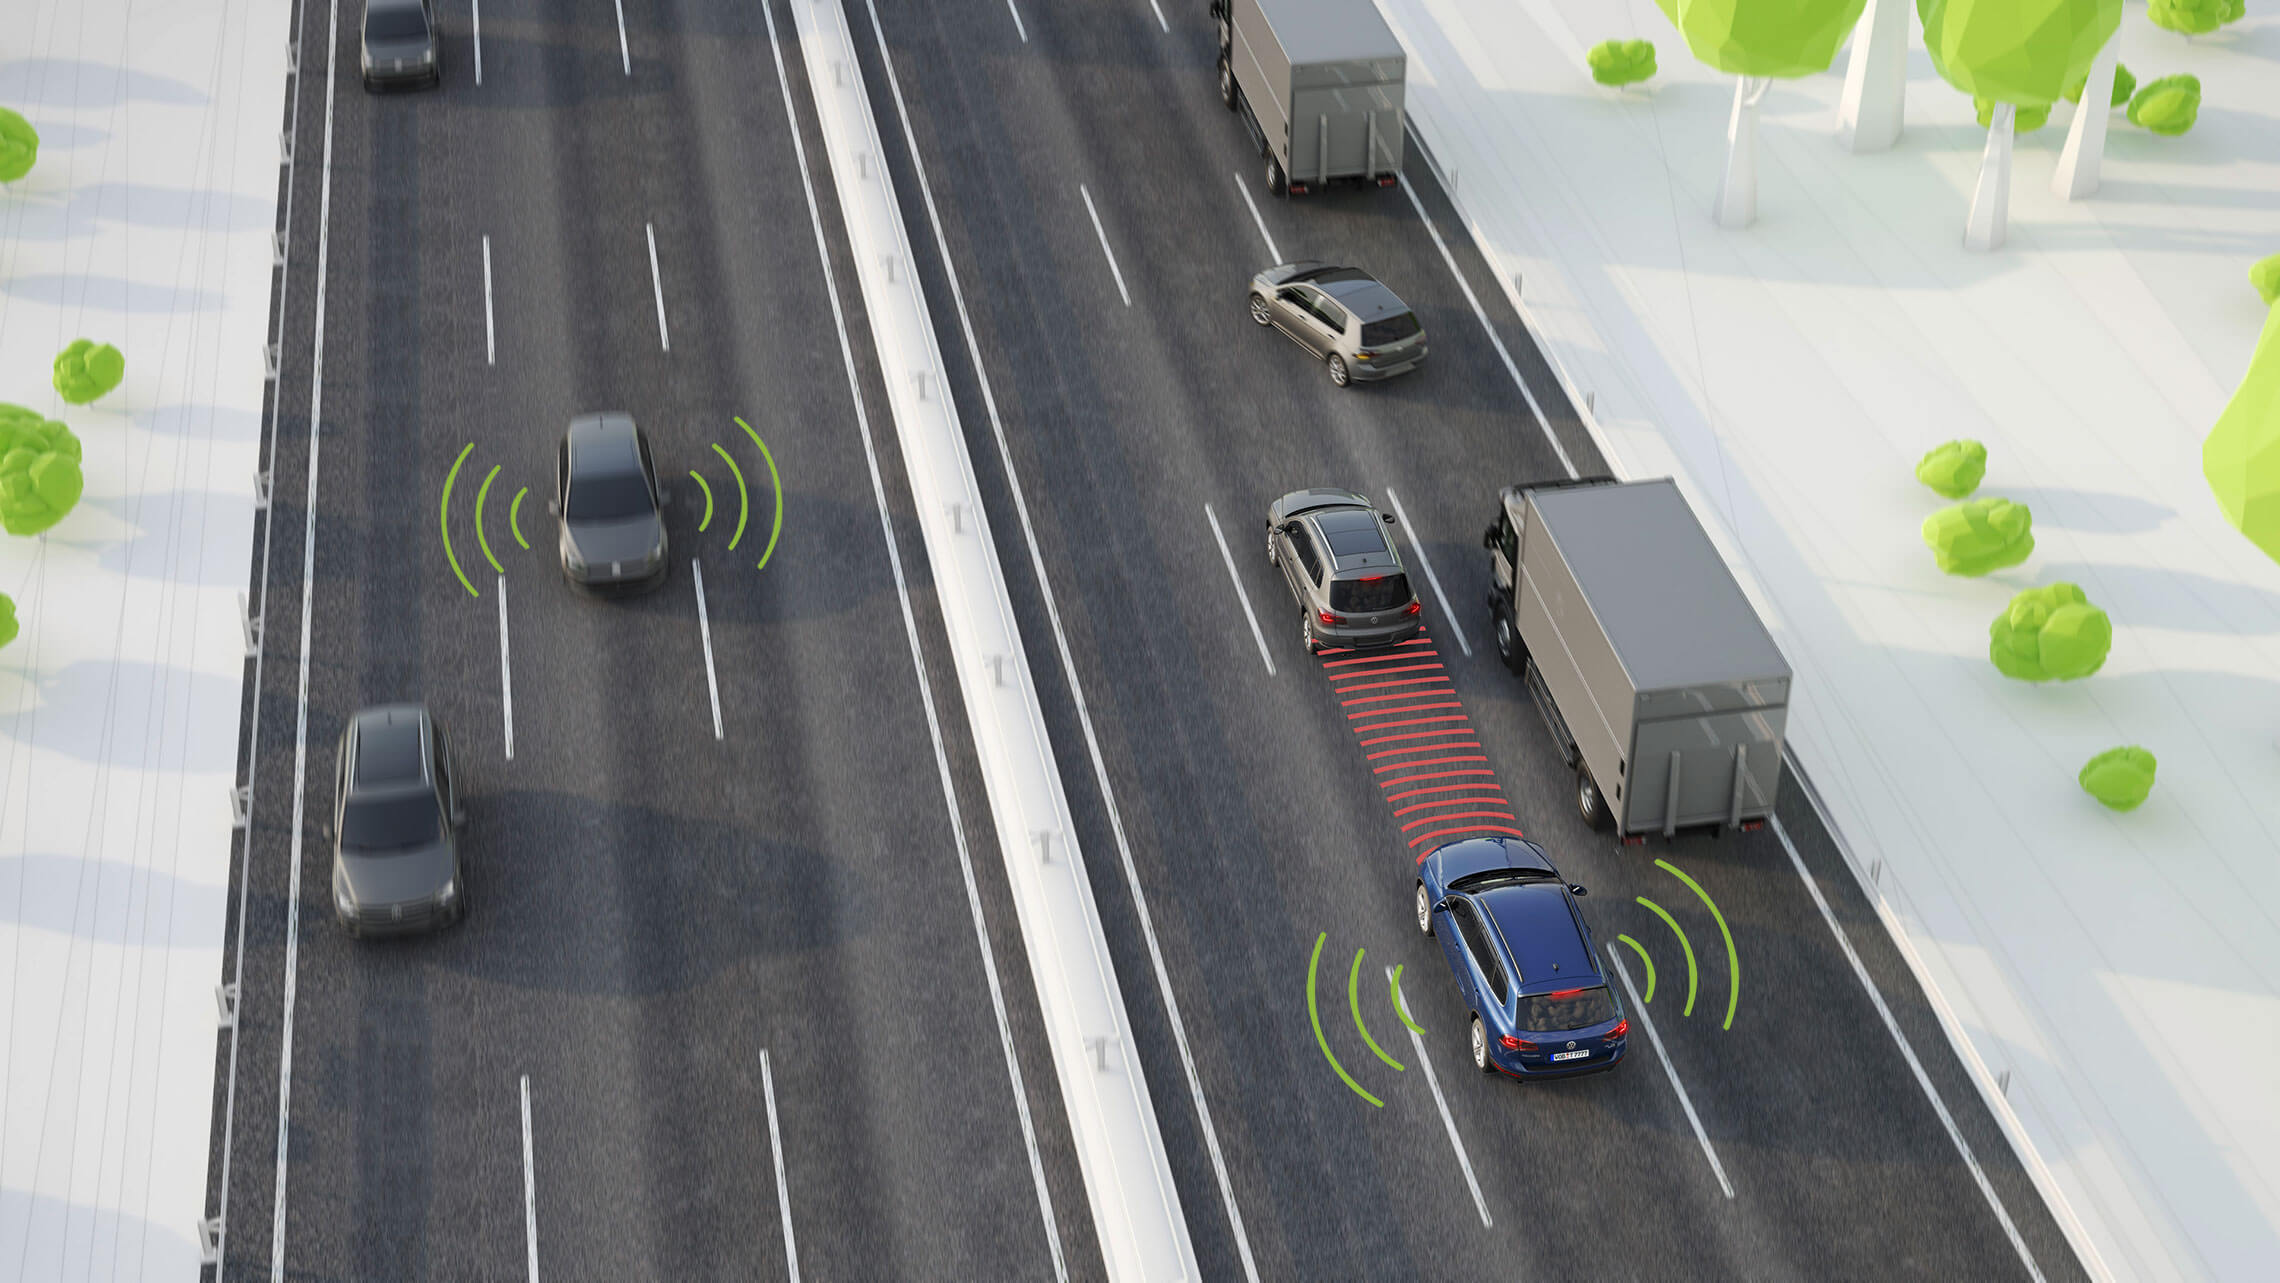 Advanced Driver Assistance Systems (ADAS) testing system from Dewesoft